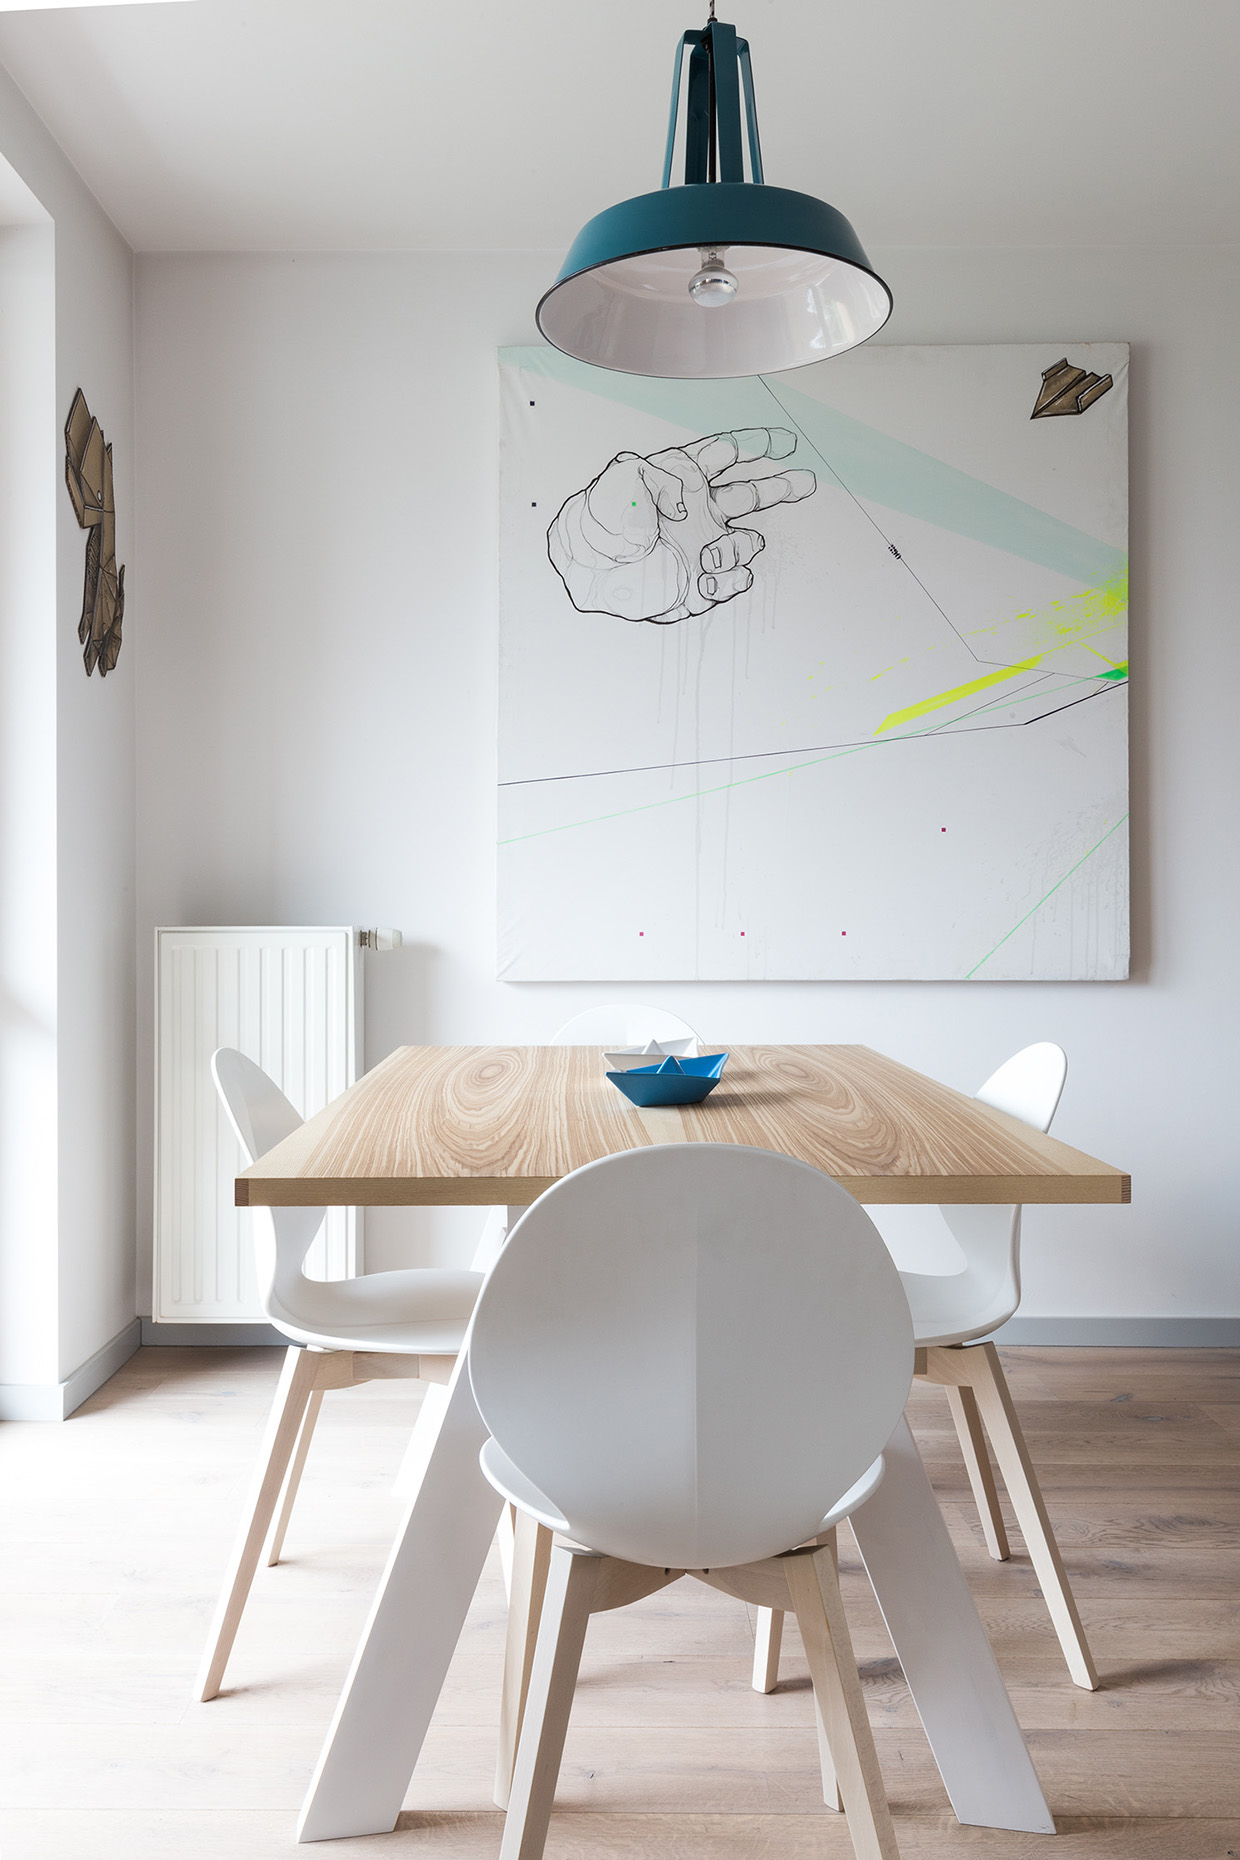 White And Wood Dining Table - 2 creative apartments featuring whimsical art